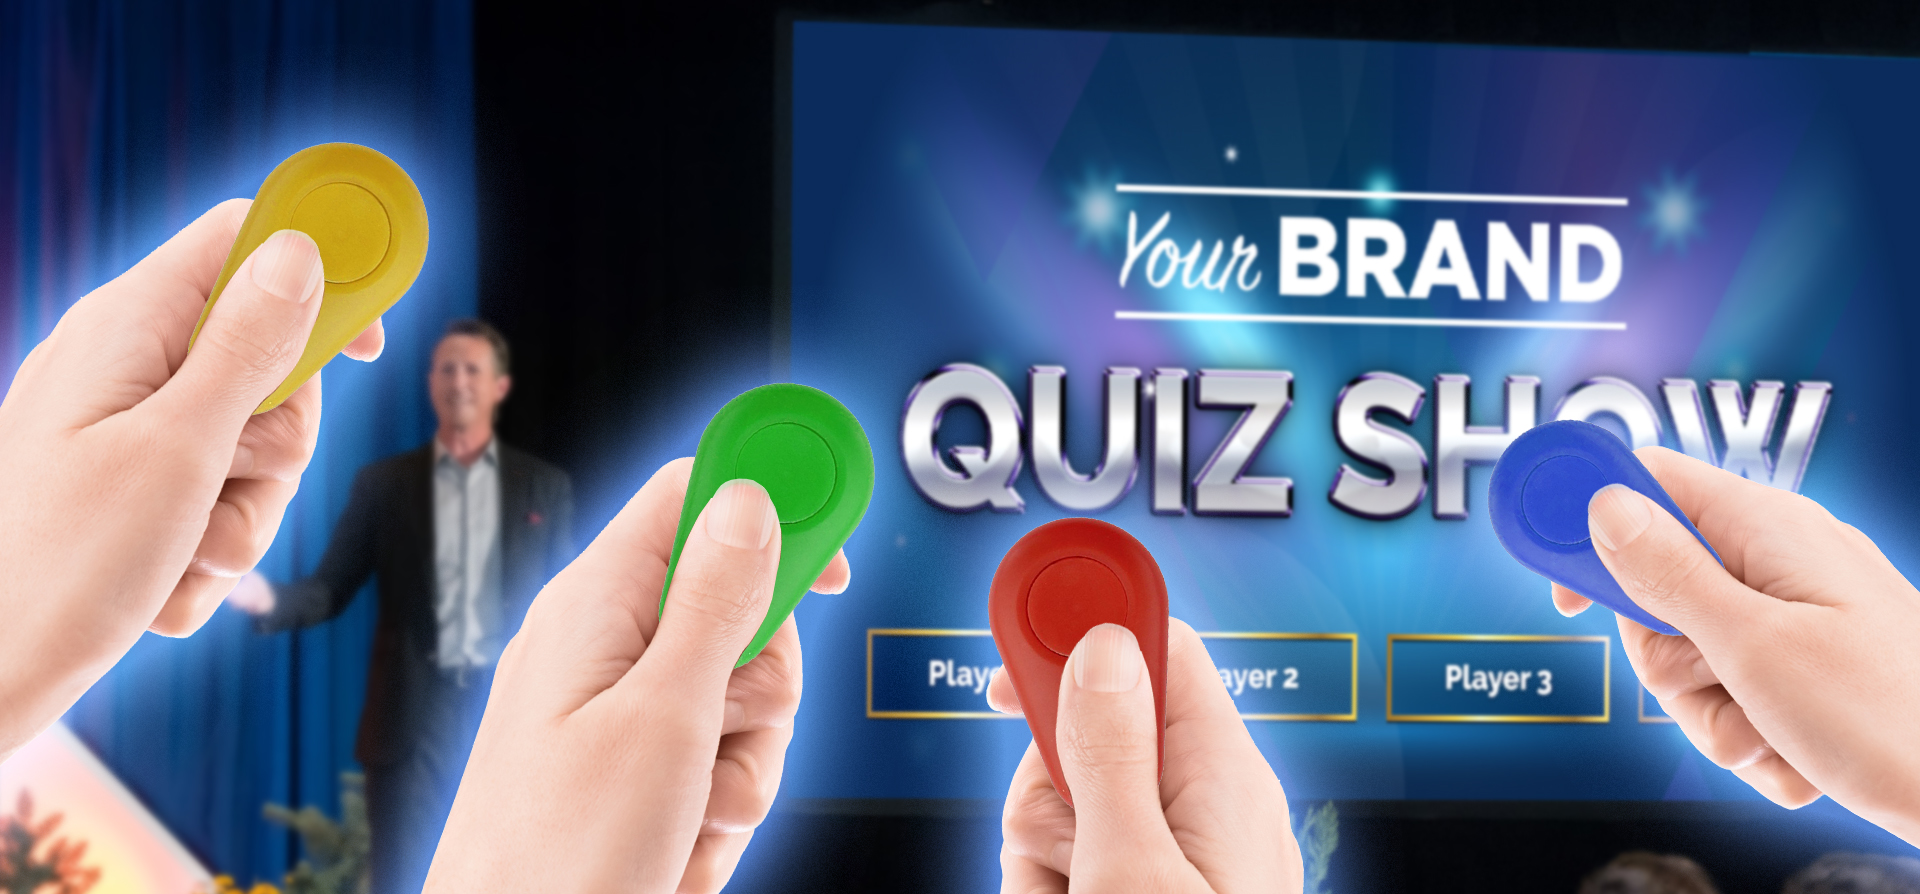 customisable_activation_game_developer_sydney_quiz_show_bluetooth_buzzer_ios_screen_multiplayer_7